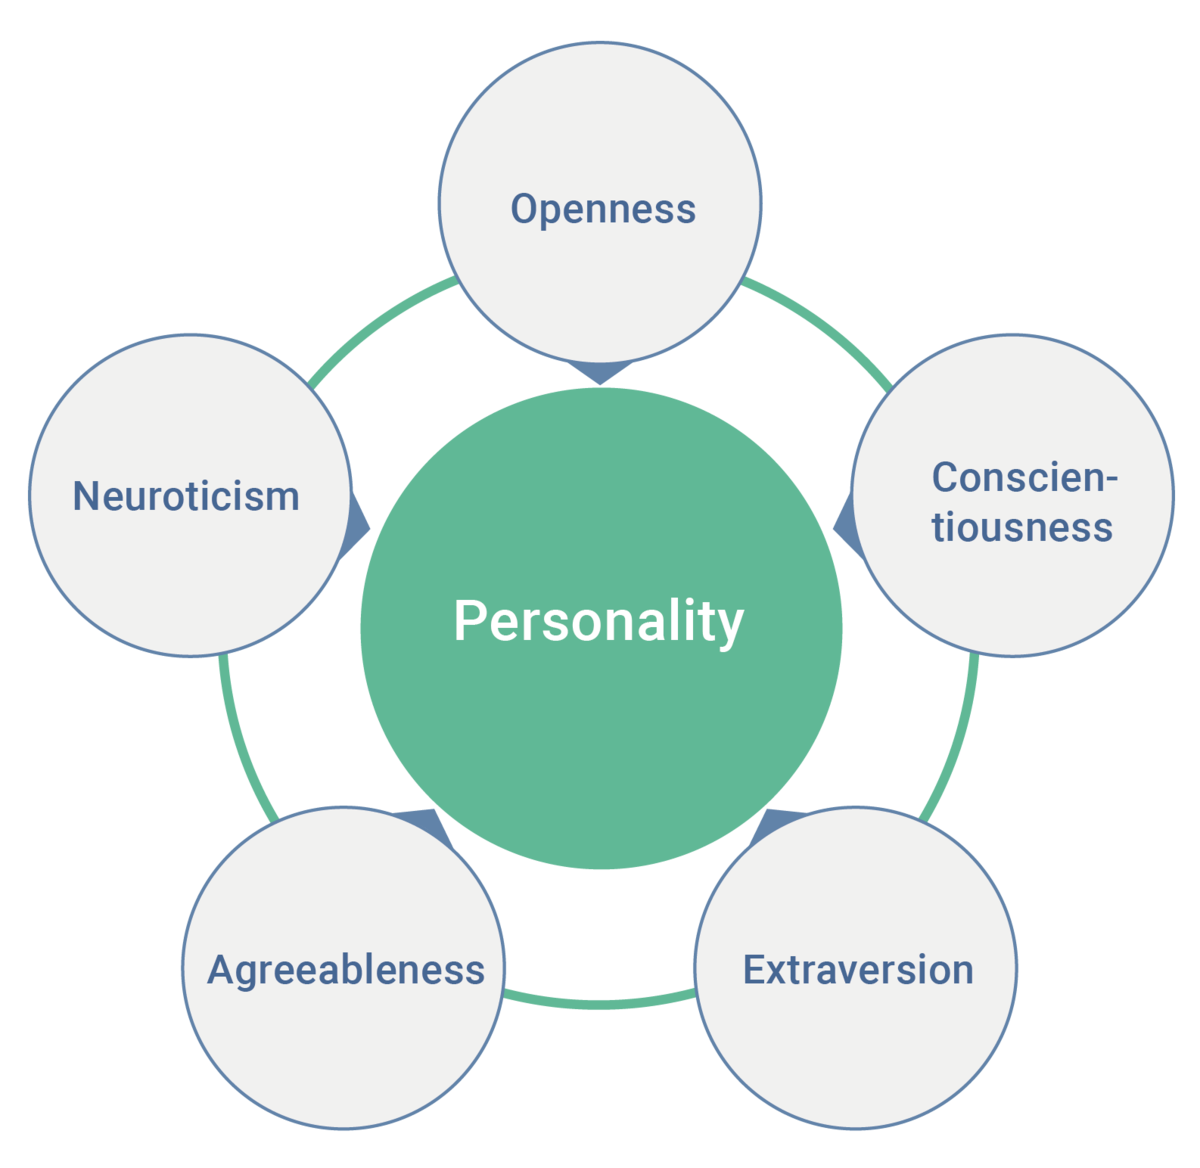 image regarding Printable Personality Test With Results titled Huge 5 identity attributes - Wikipedia